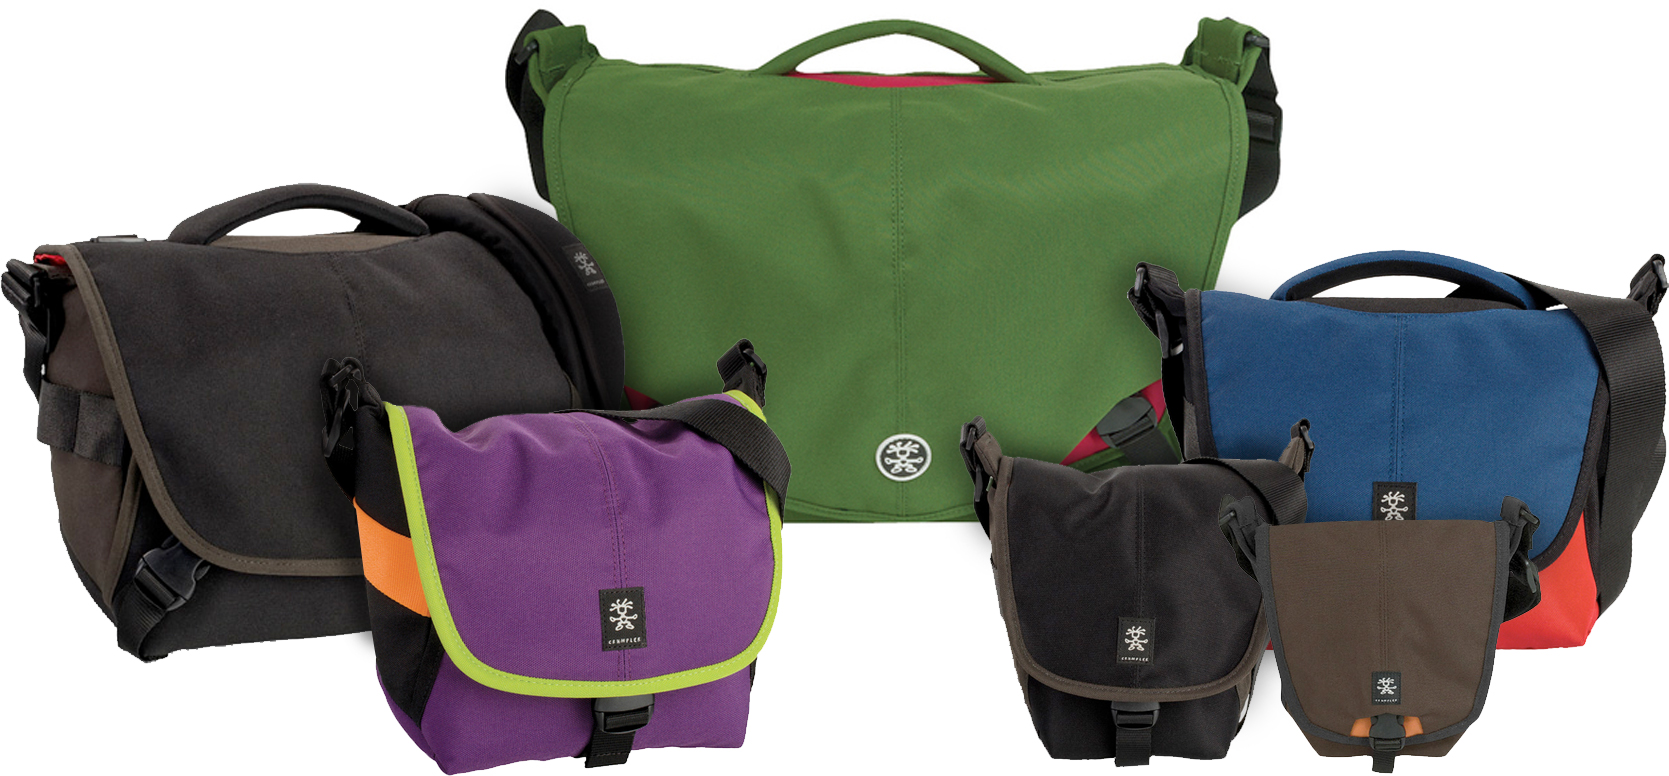 Crumpler Bags Quality Bags And Cases From Down Under B